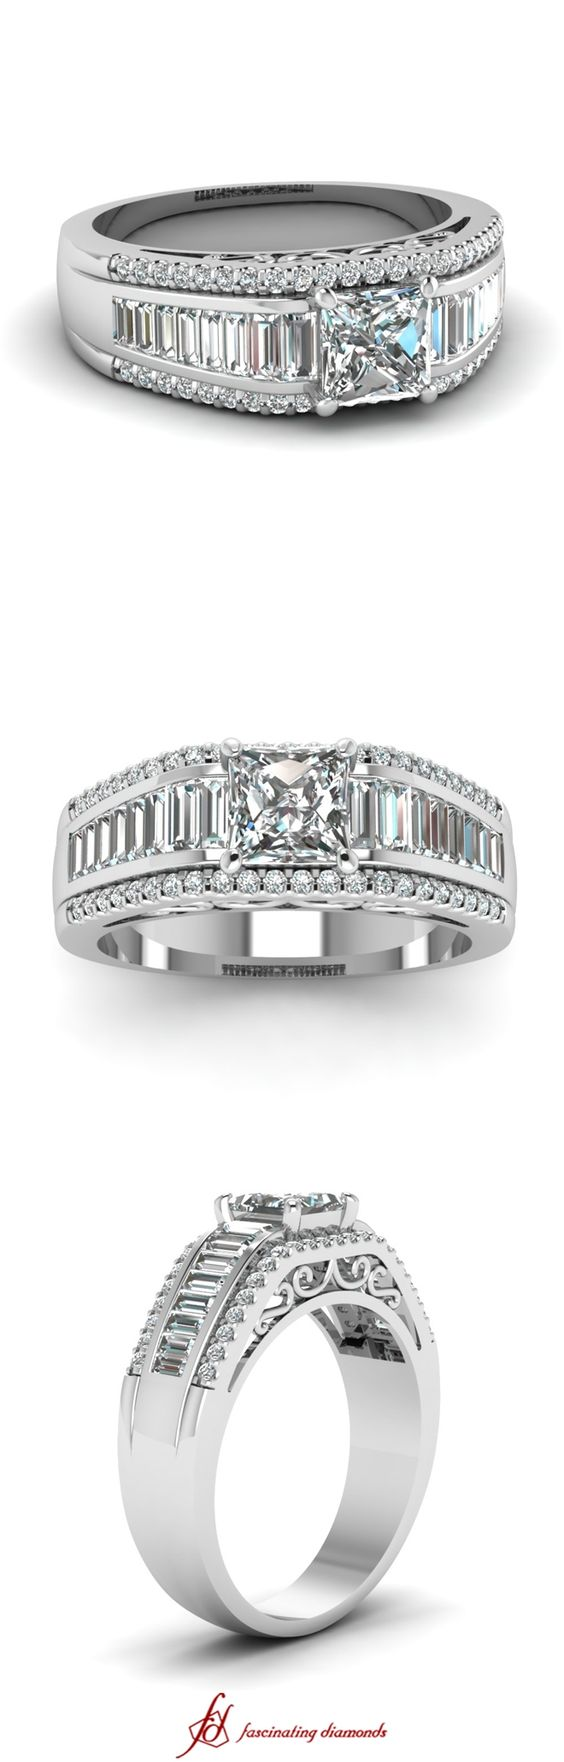 Palatial Ring || Princess Cut Diamond Side Stone Ring With White Diamond In 14K White Gold